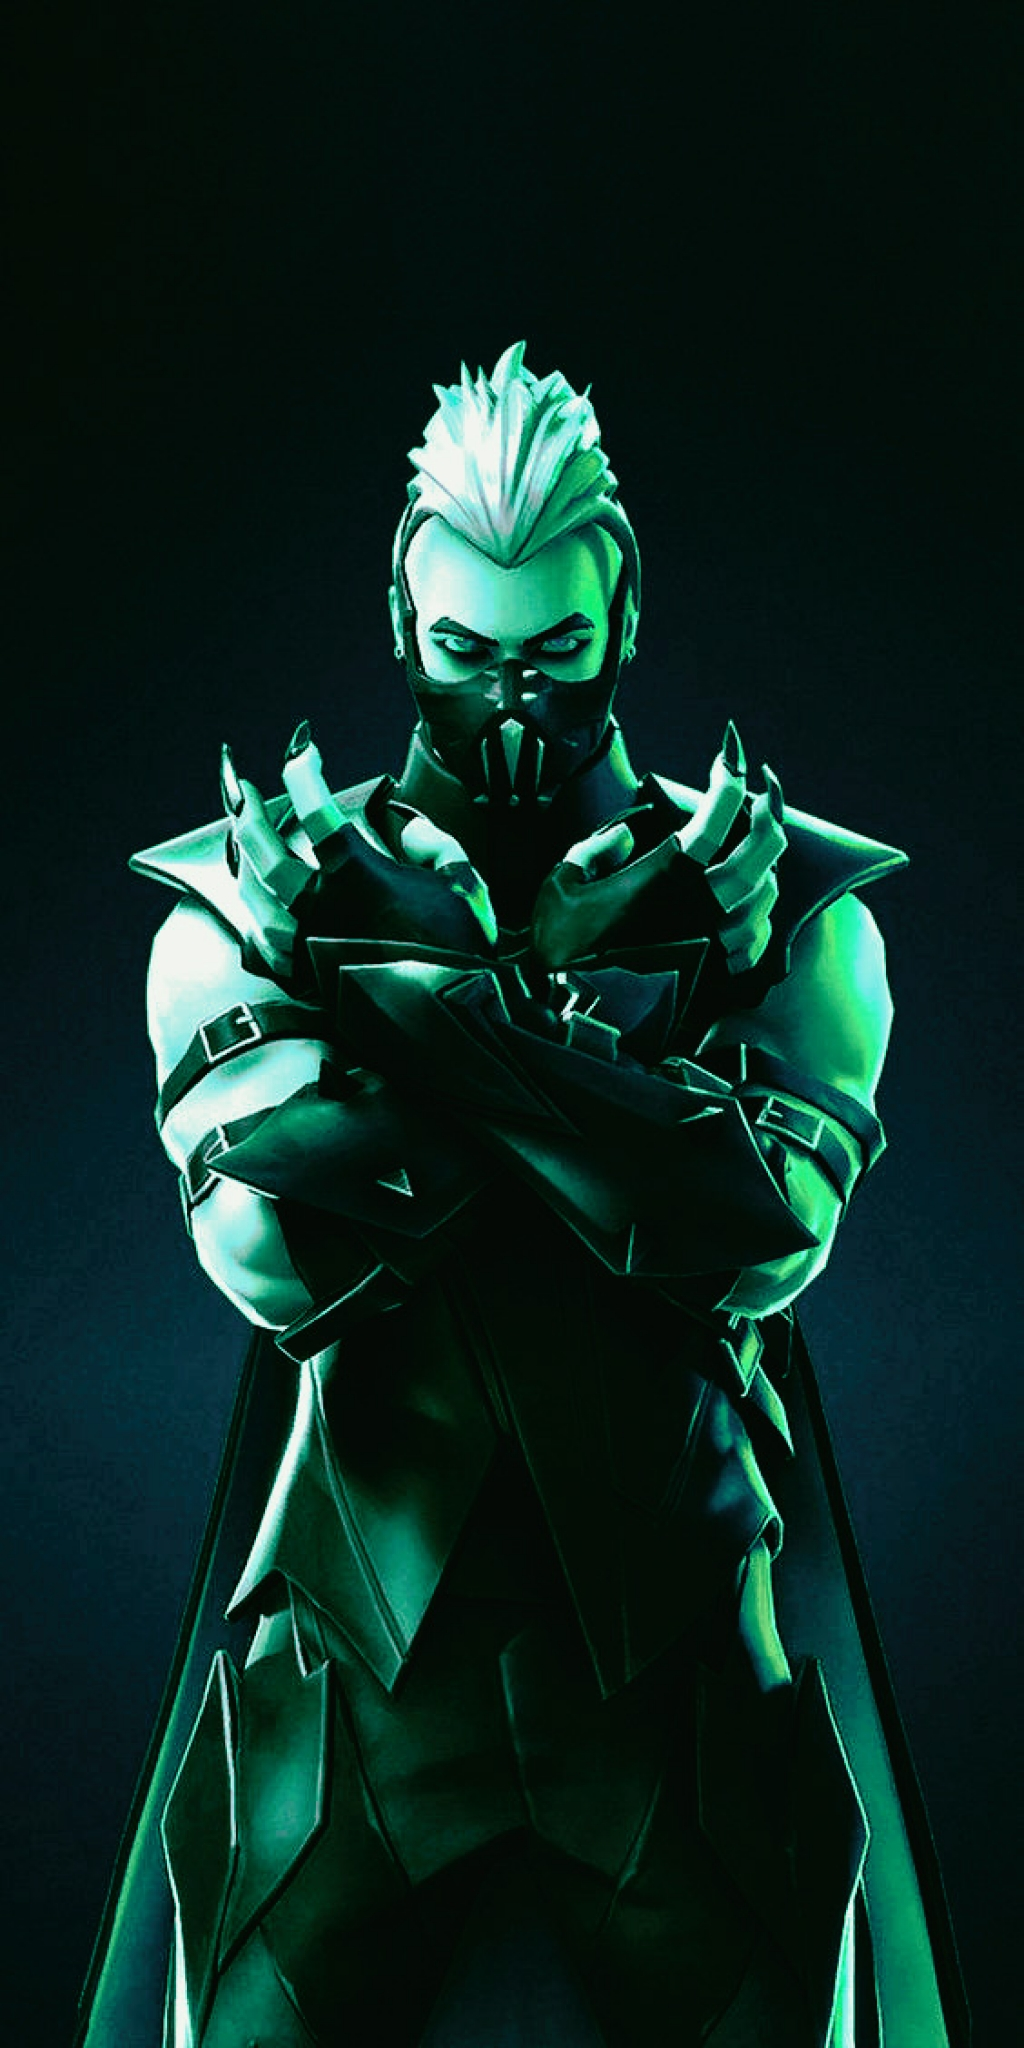 Top 10 Fortnite Vertical Full Hd Wallpapers Cool Fortnite Skins 1024x2048 Download Hd Wallpaper Wallpapertip